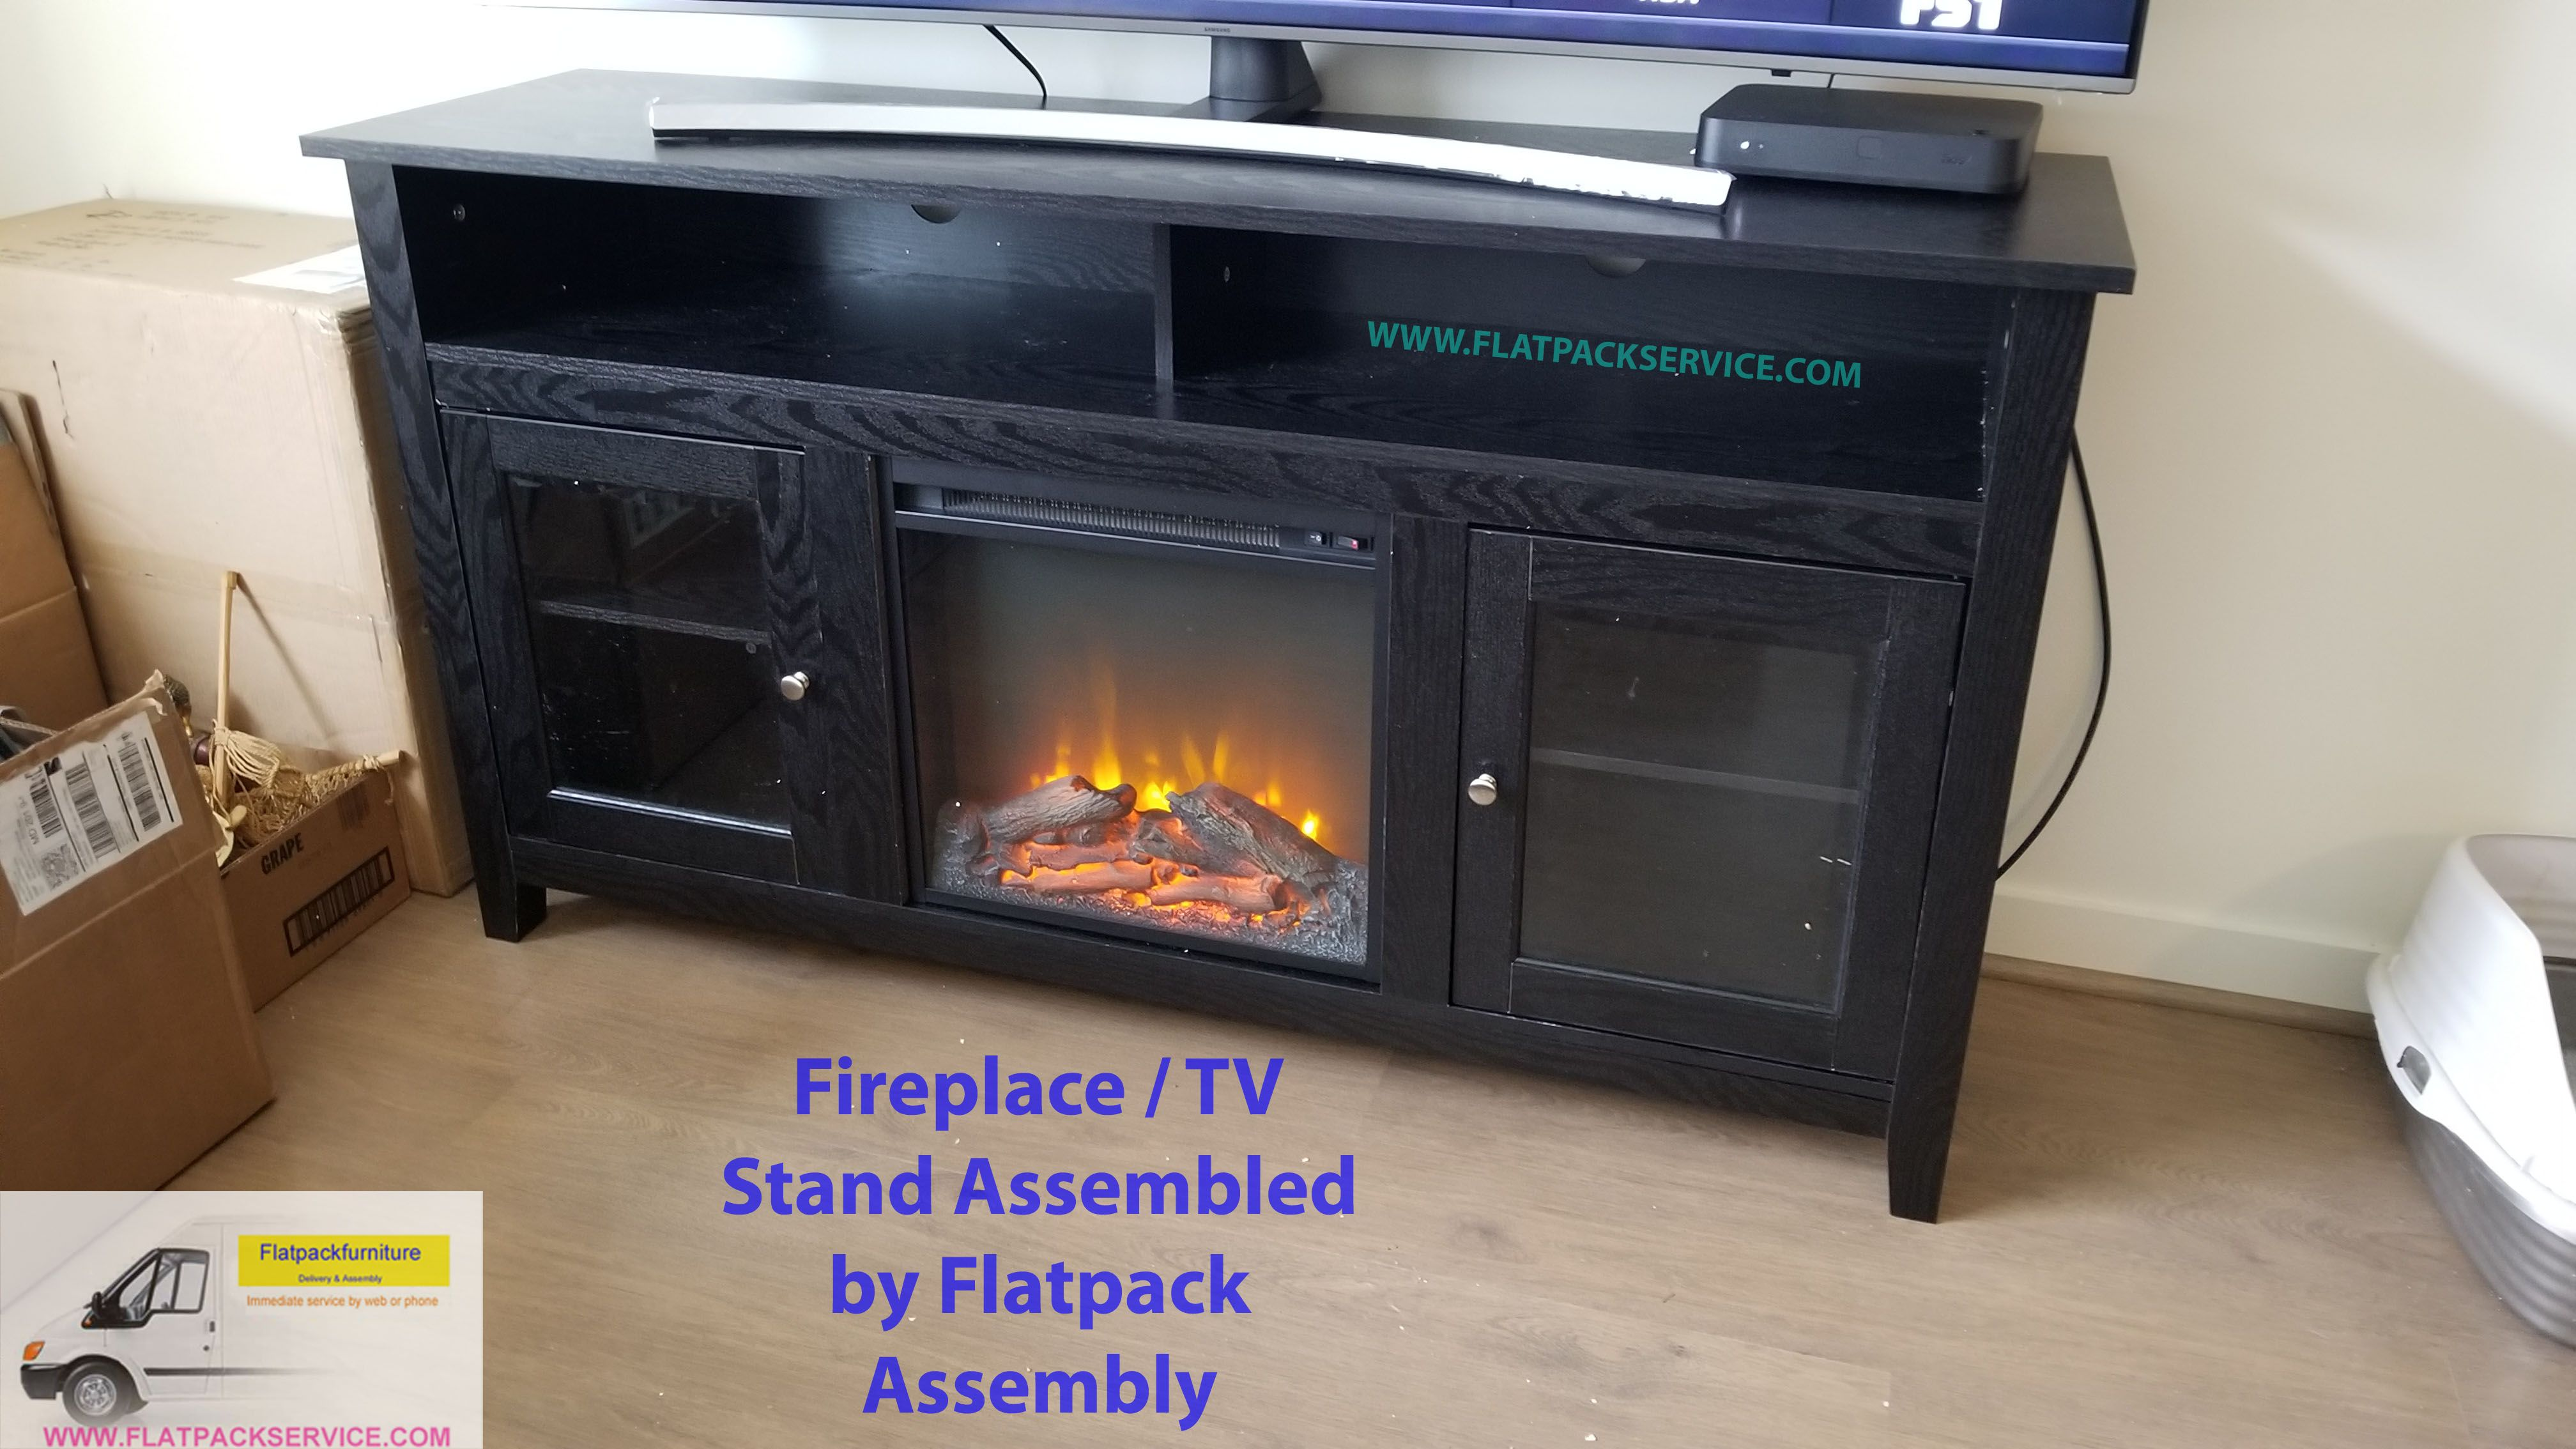 Electric Fireplace Assembly Service Washington Dc Flatpack Assembly And Delivery 202 277 5911 Electric Fi Furniture Assembly Flat Pack Furniture Cool Tv Stands